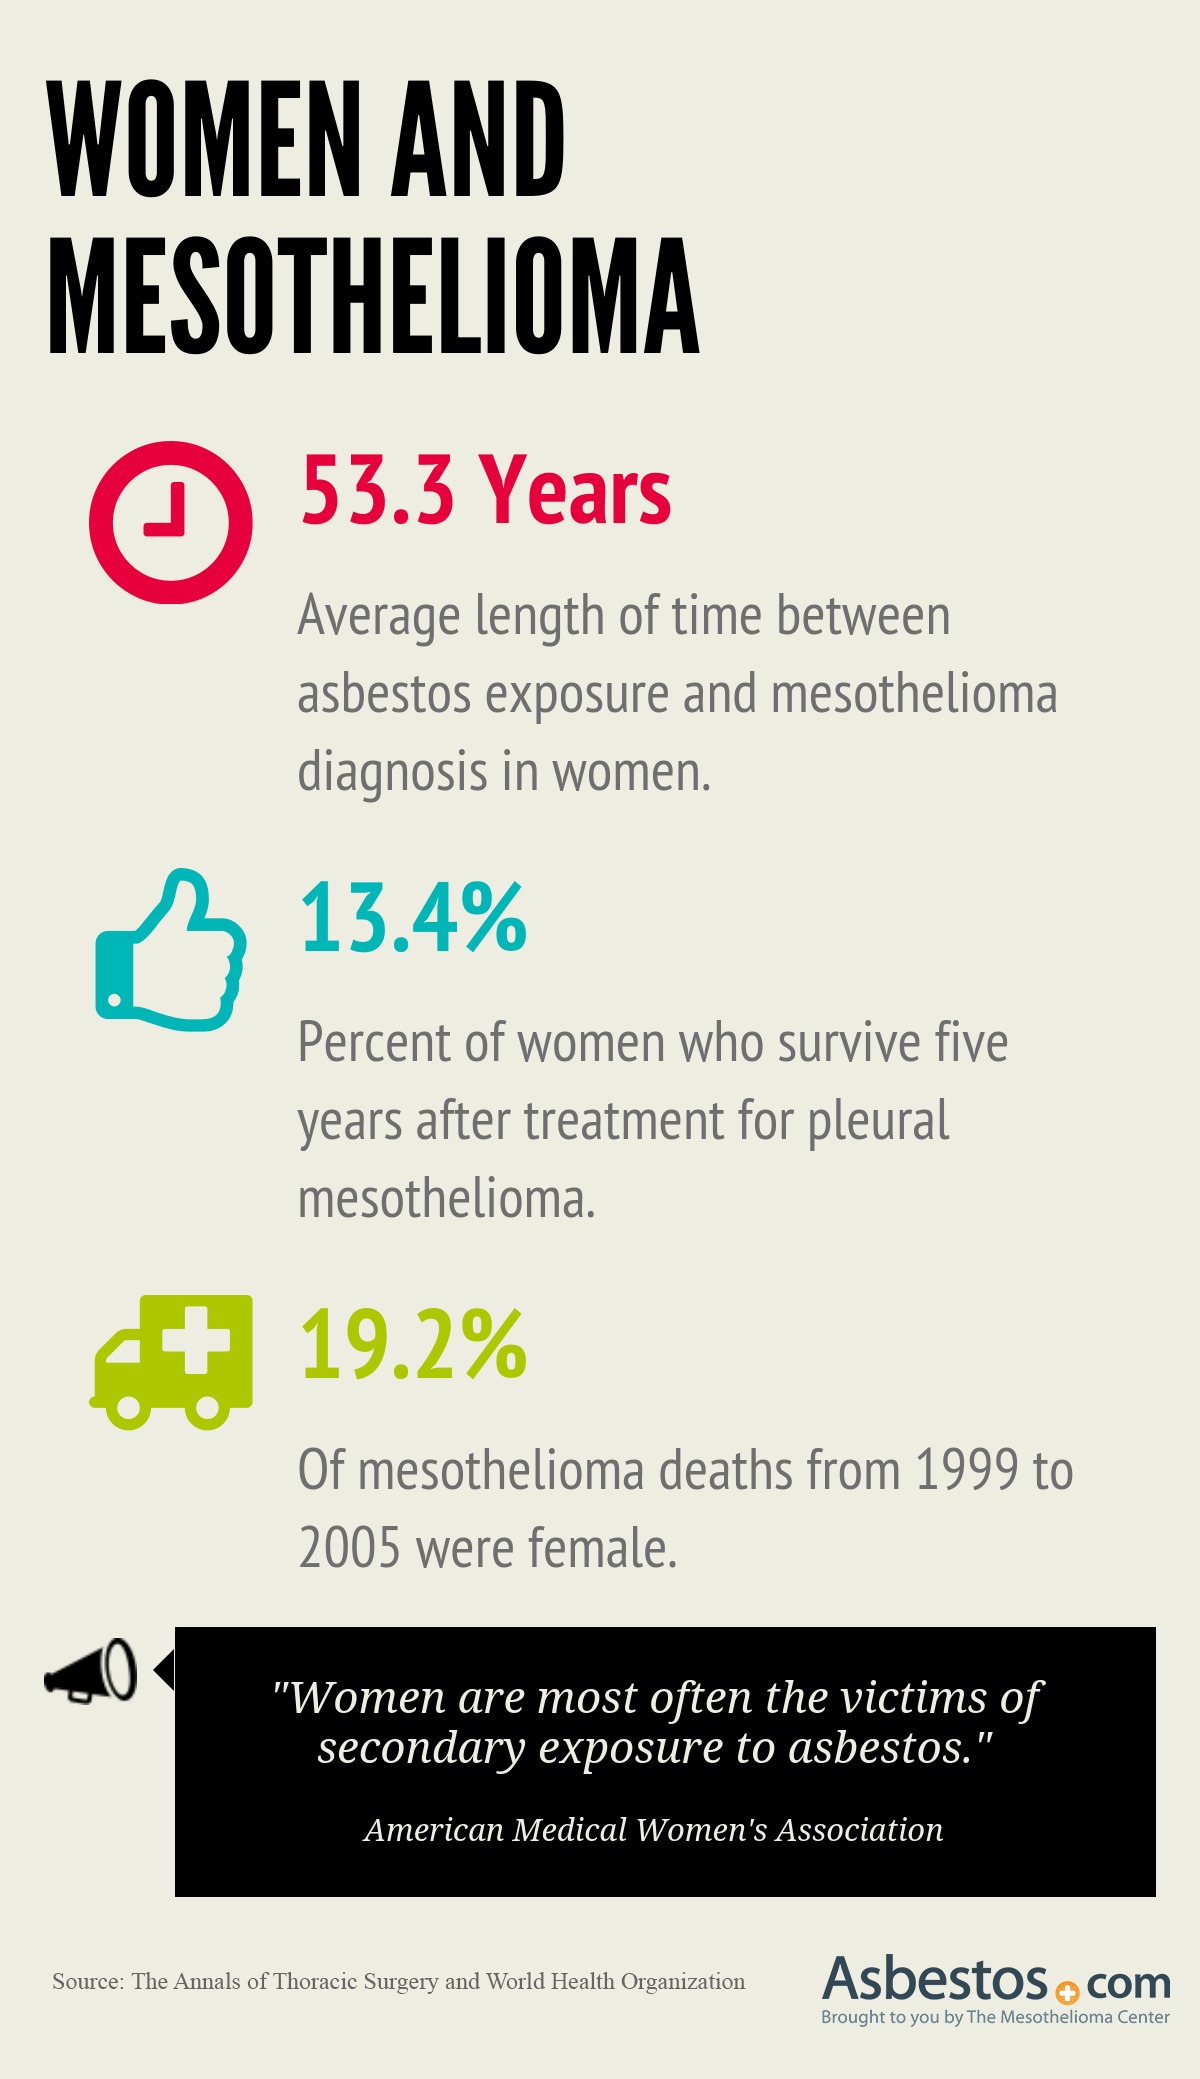 Women and Mesothelioma